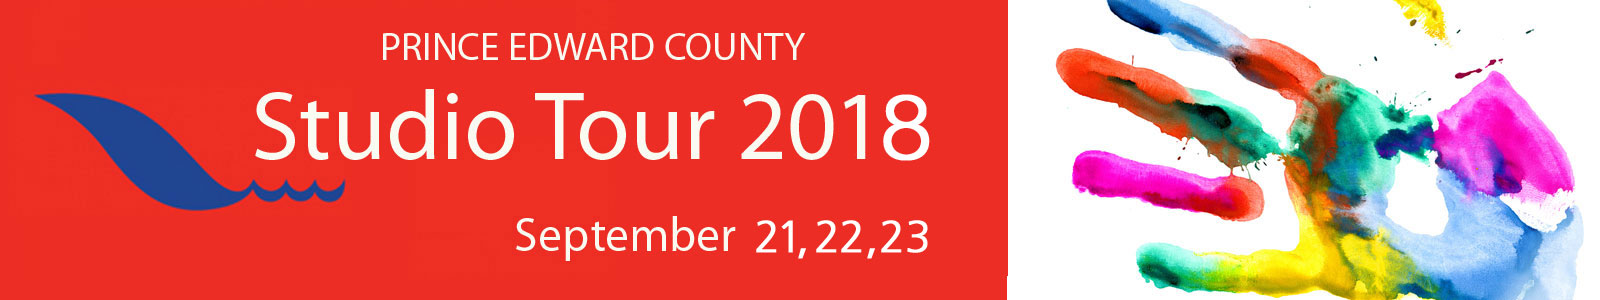 Prince Edward County Studio Tour 2018 September 21, 22, 23